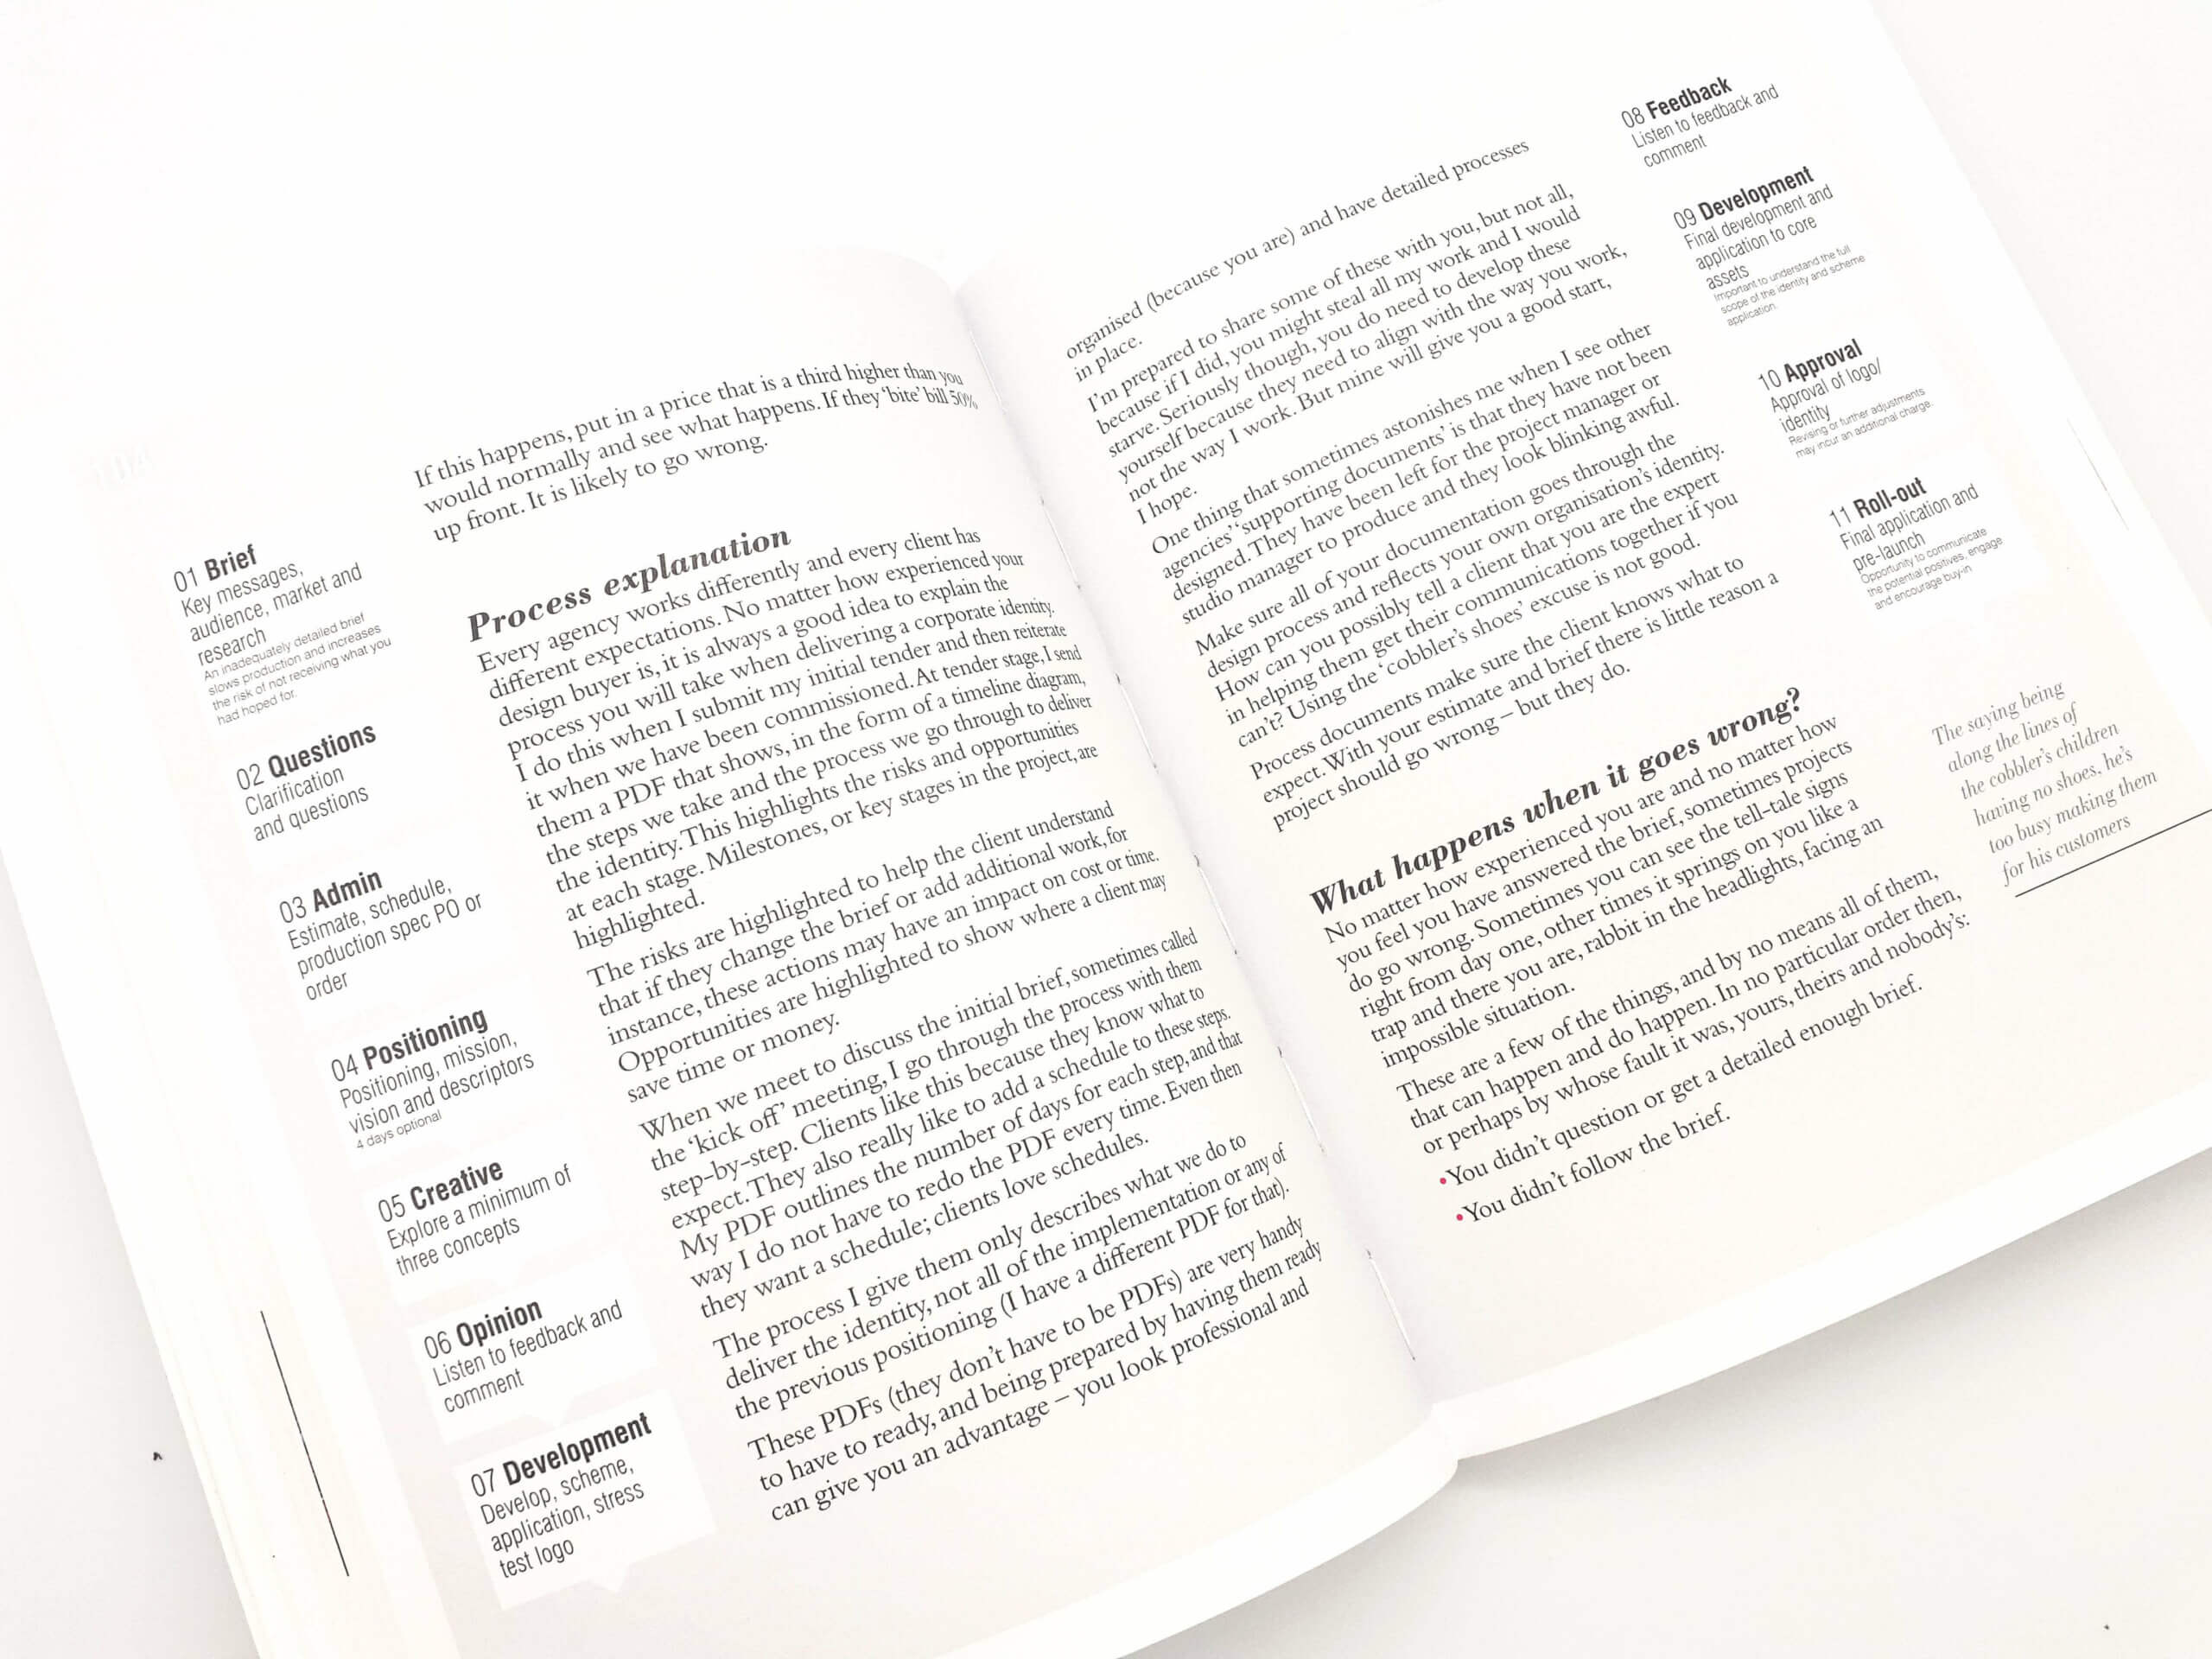 Know Your Onions - Corporate Identity By Drew de Soto - Book Review_10